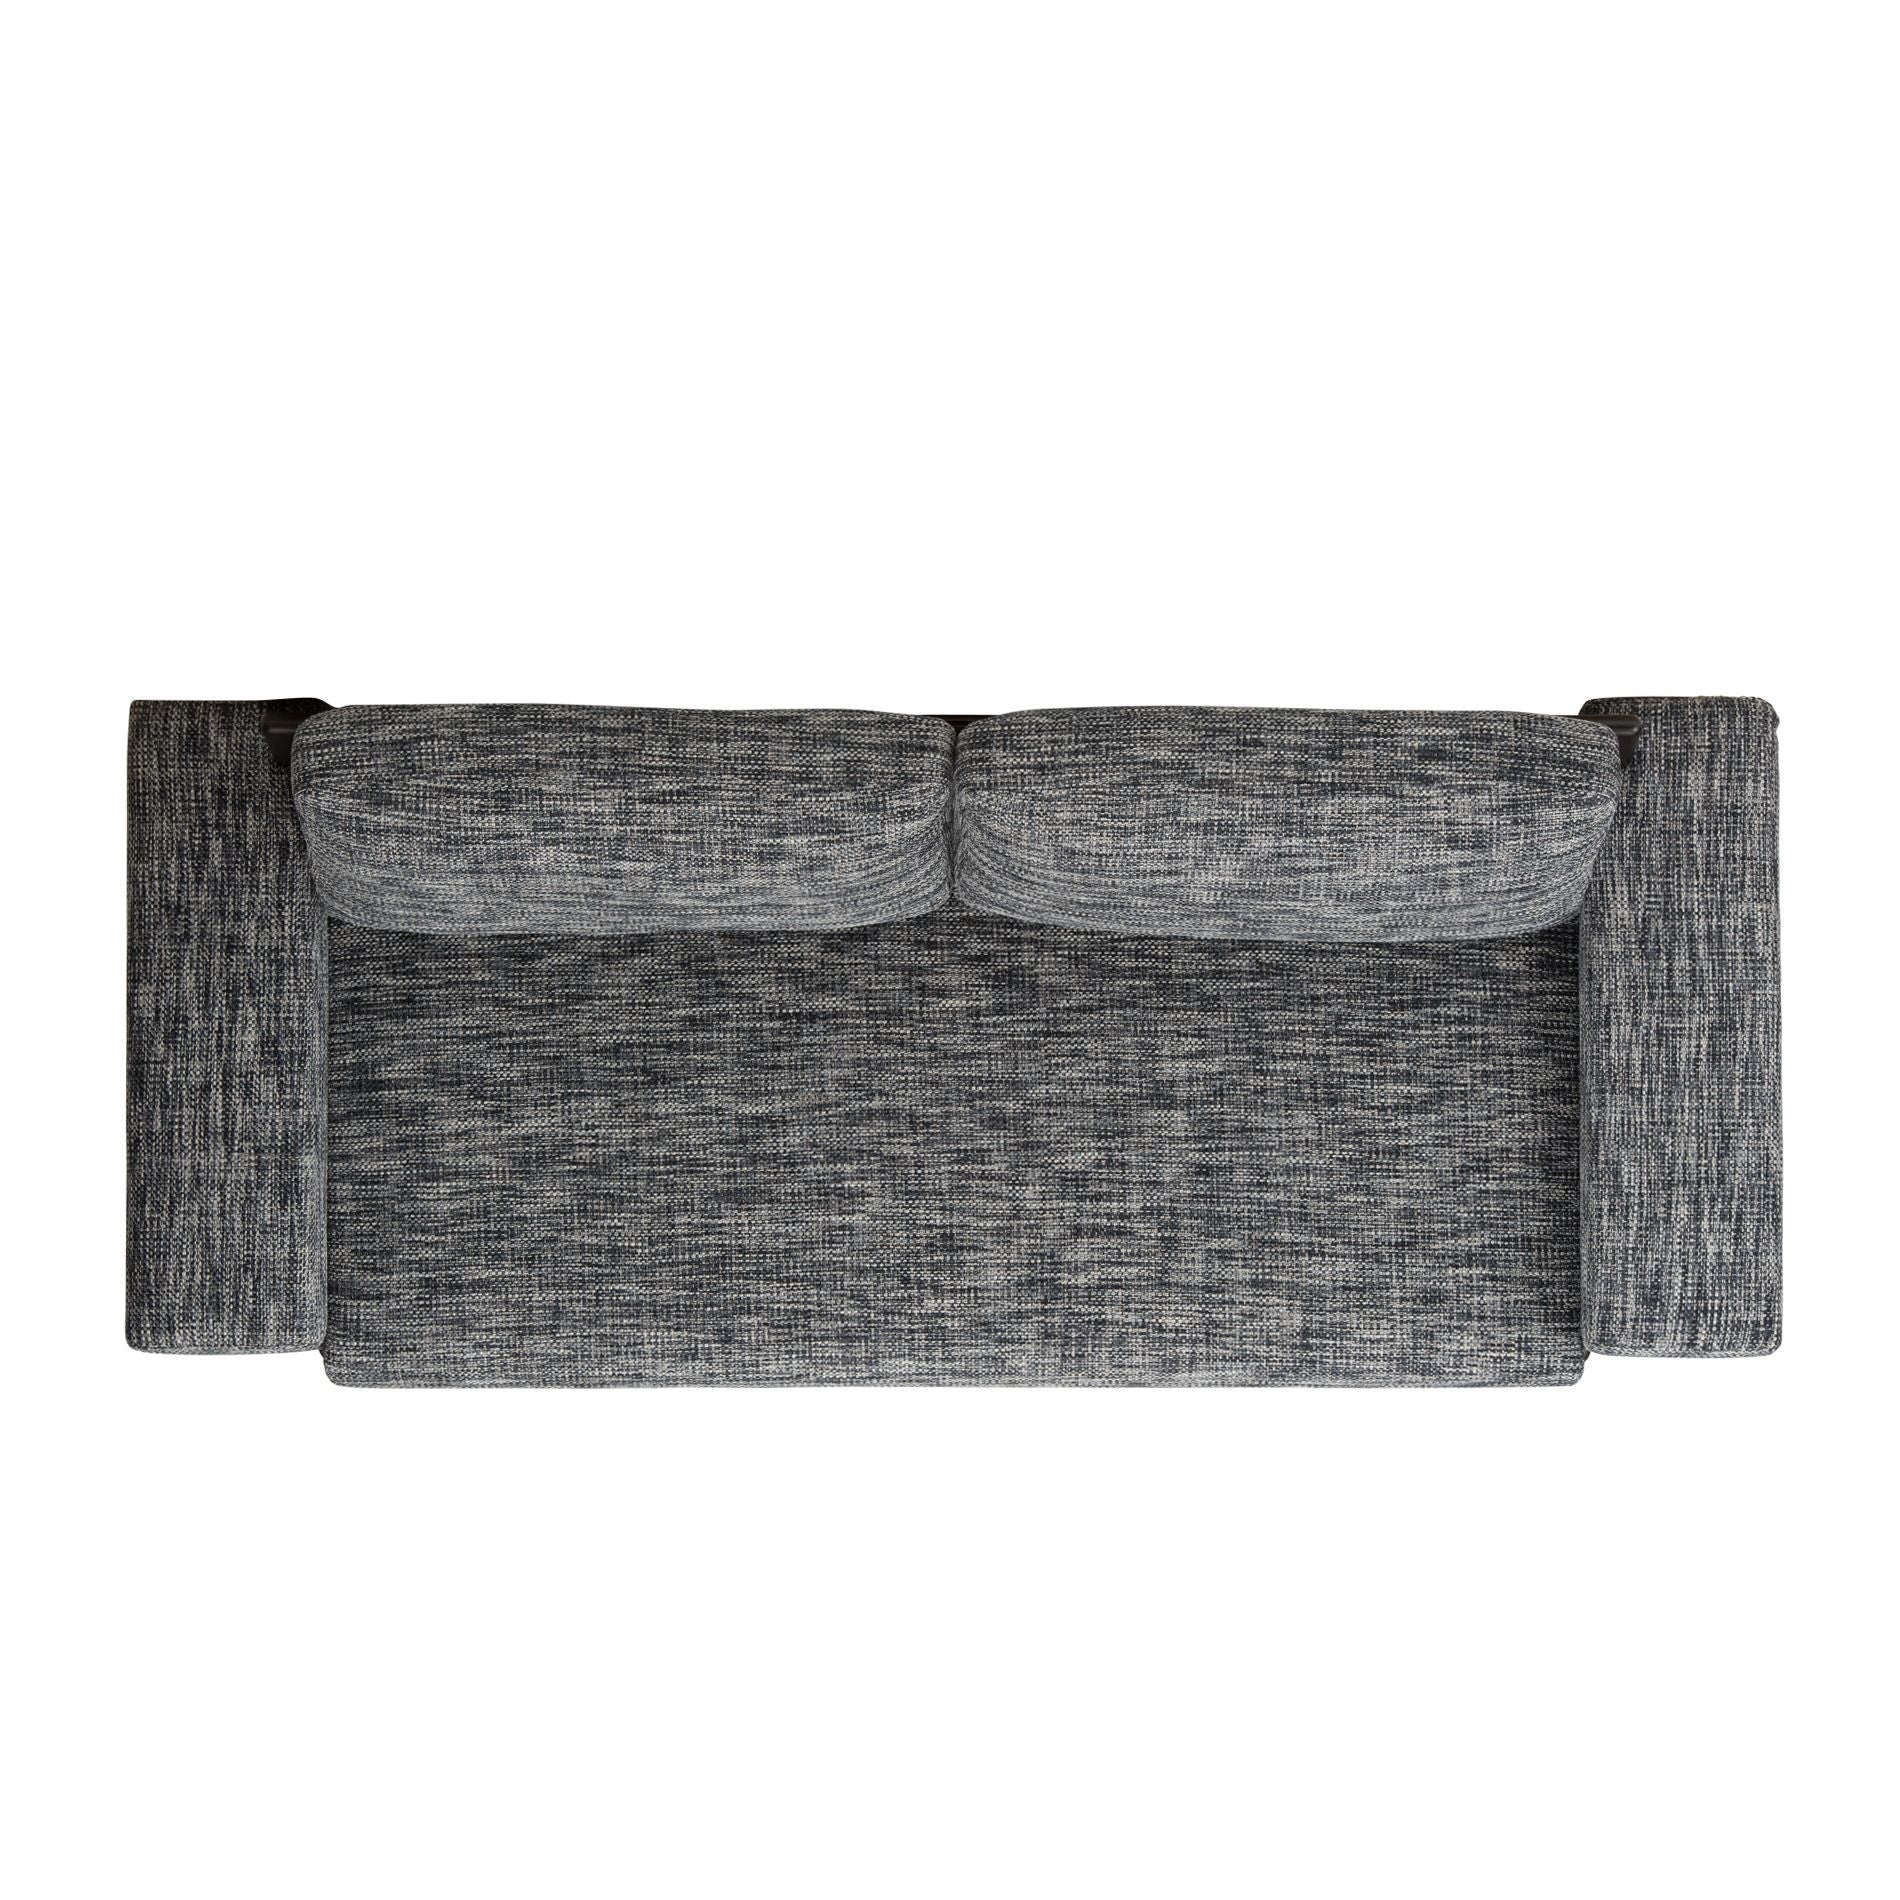 Conde House - RS Sofa 2P - Sofa